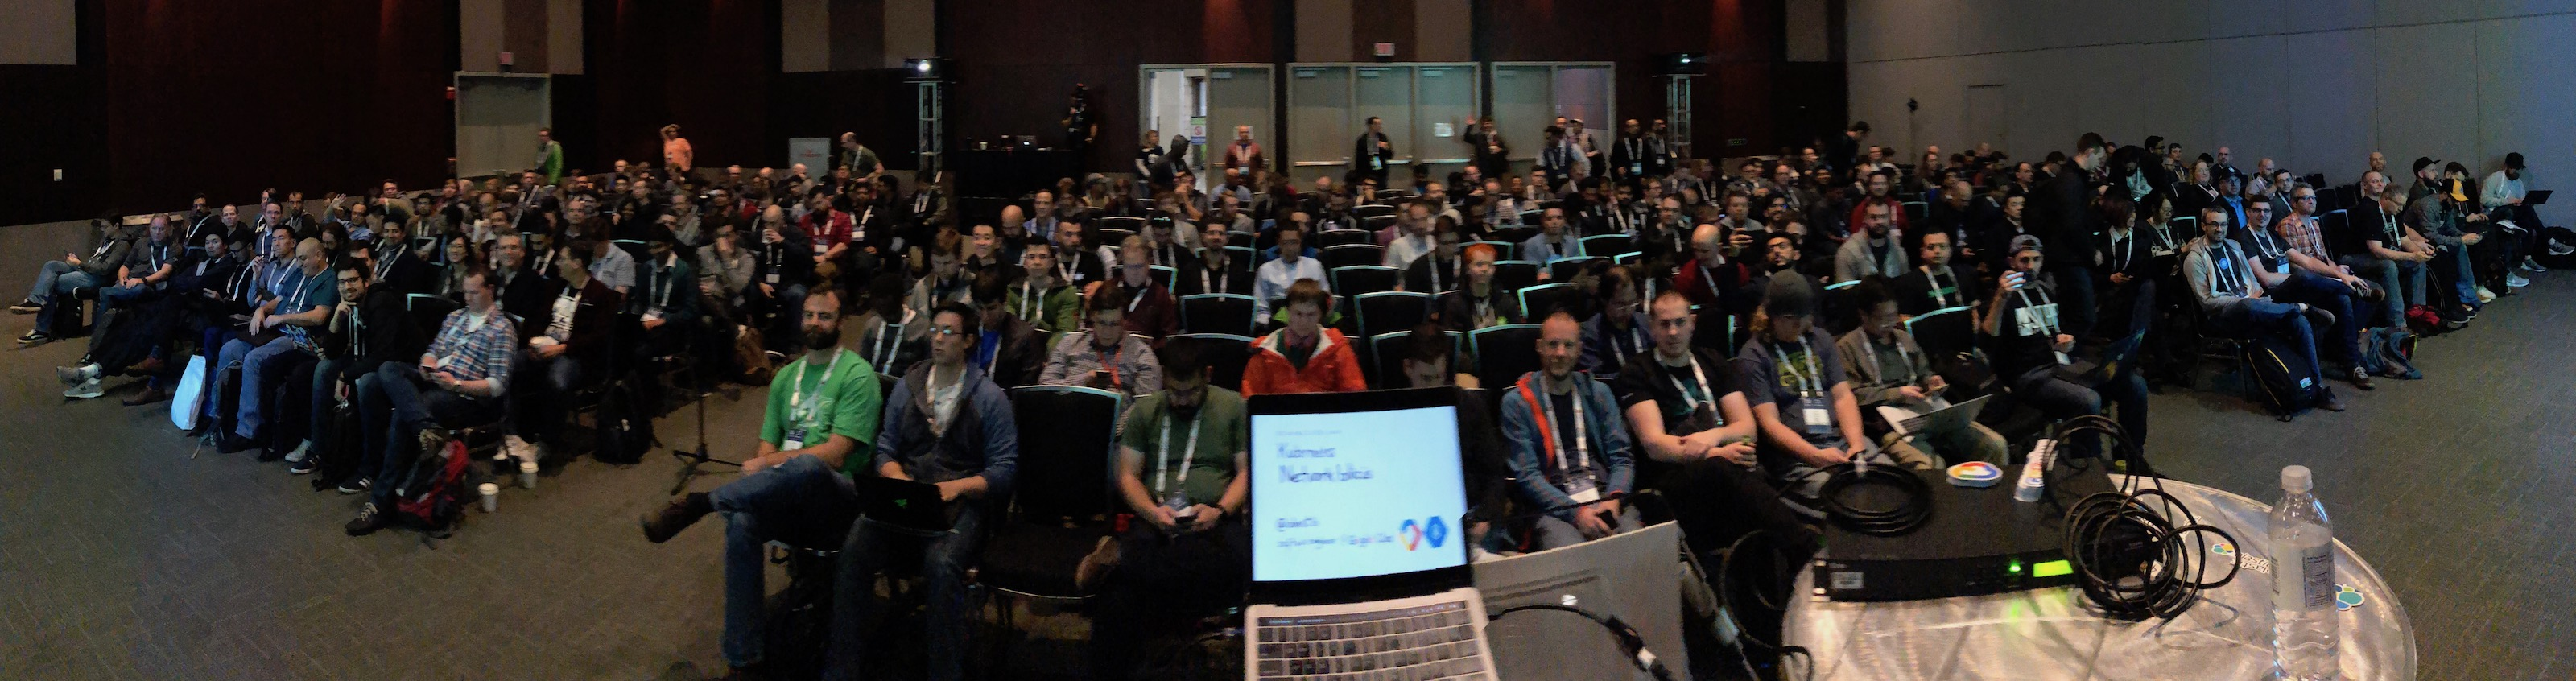 The audience for my talk